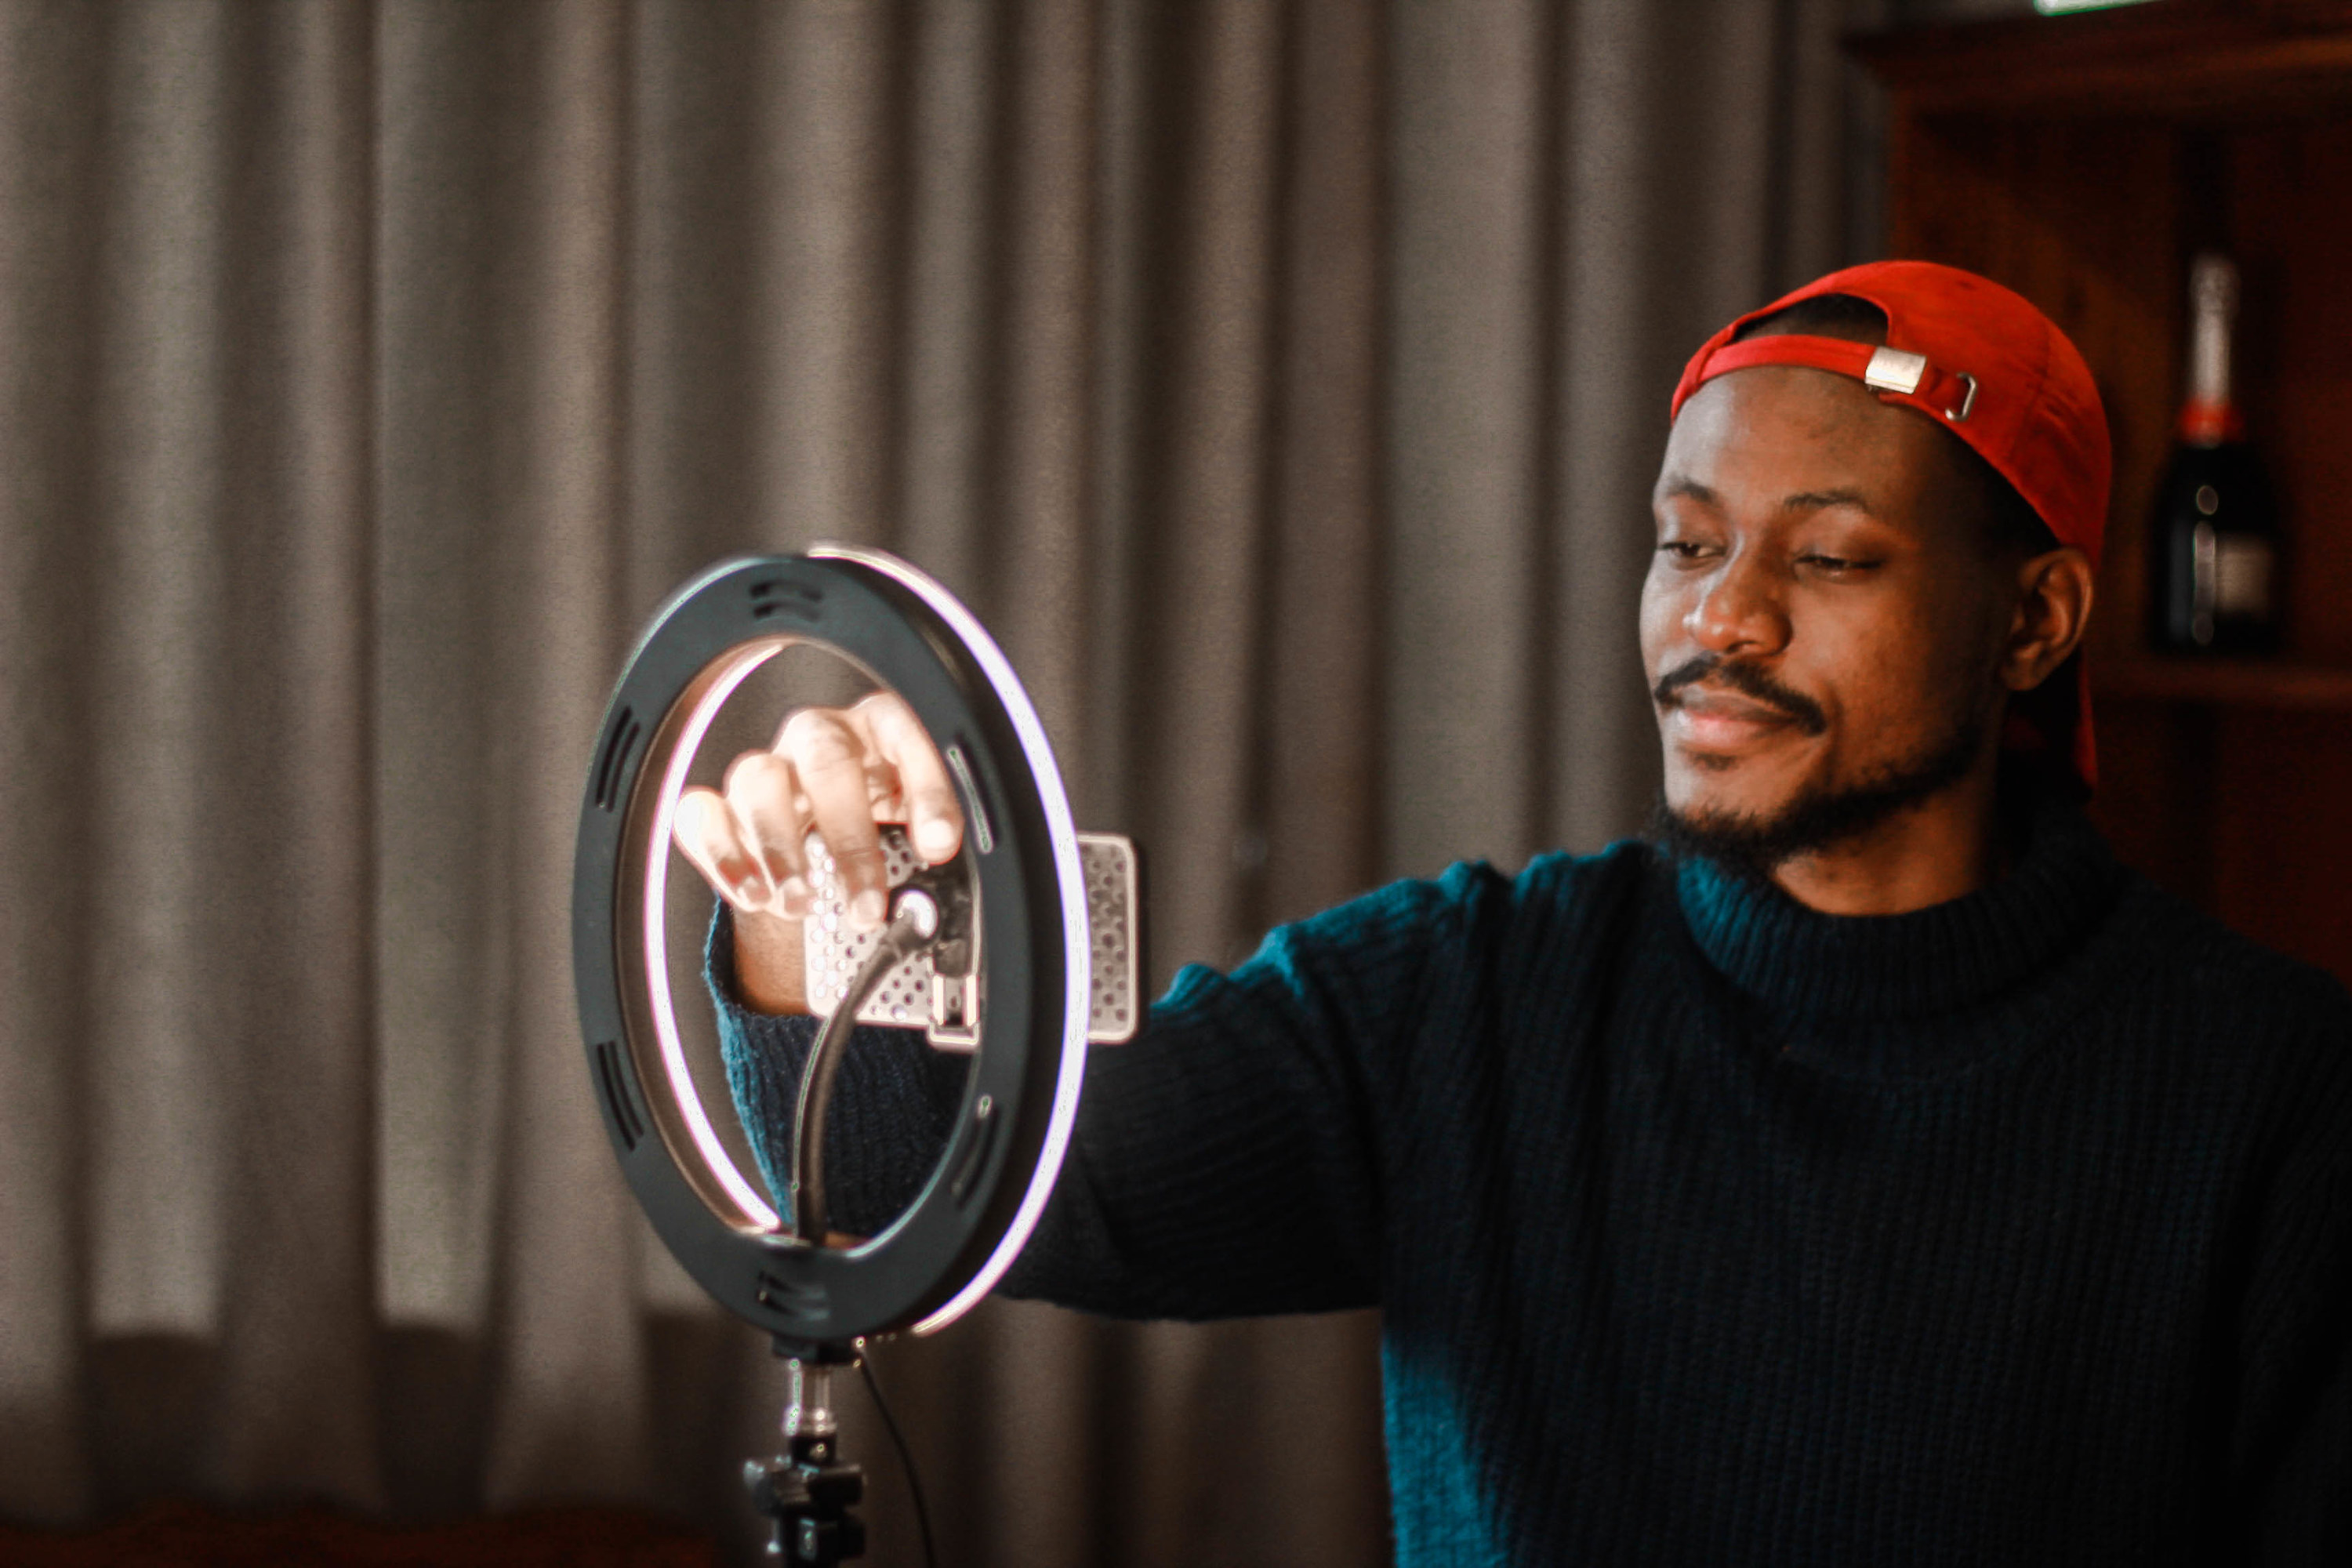 YouTuber setting up his camera inside his ring light.